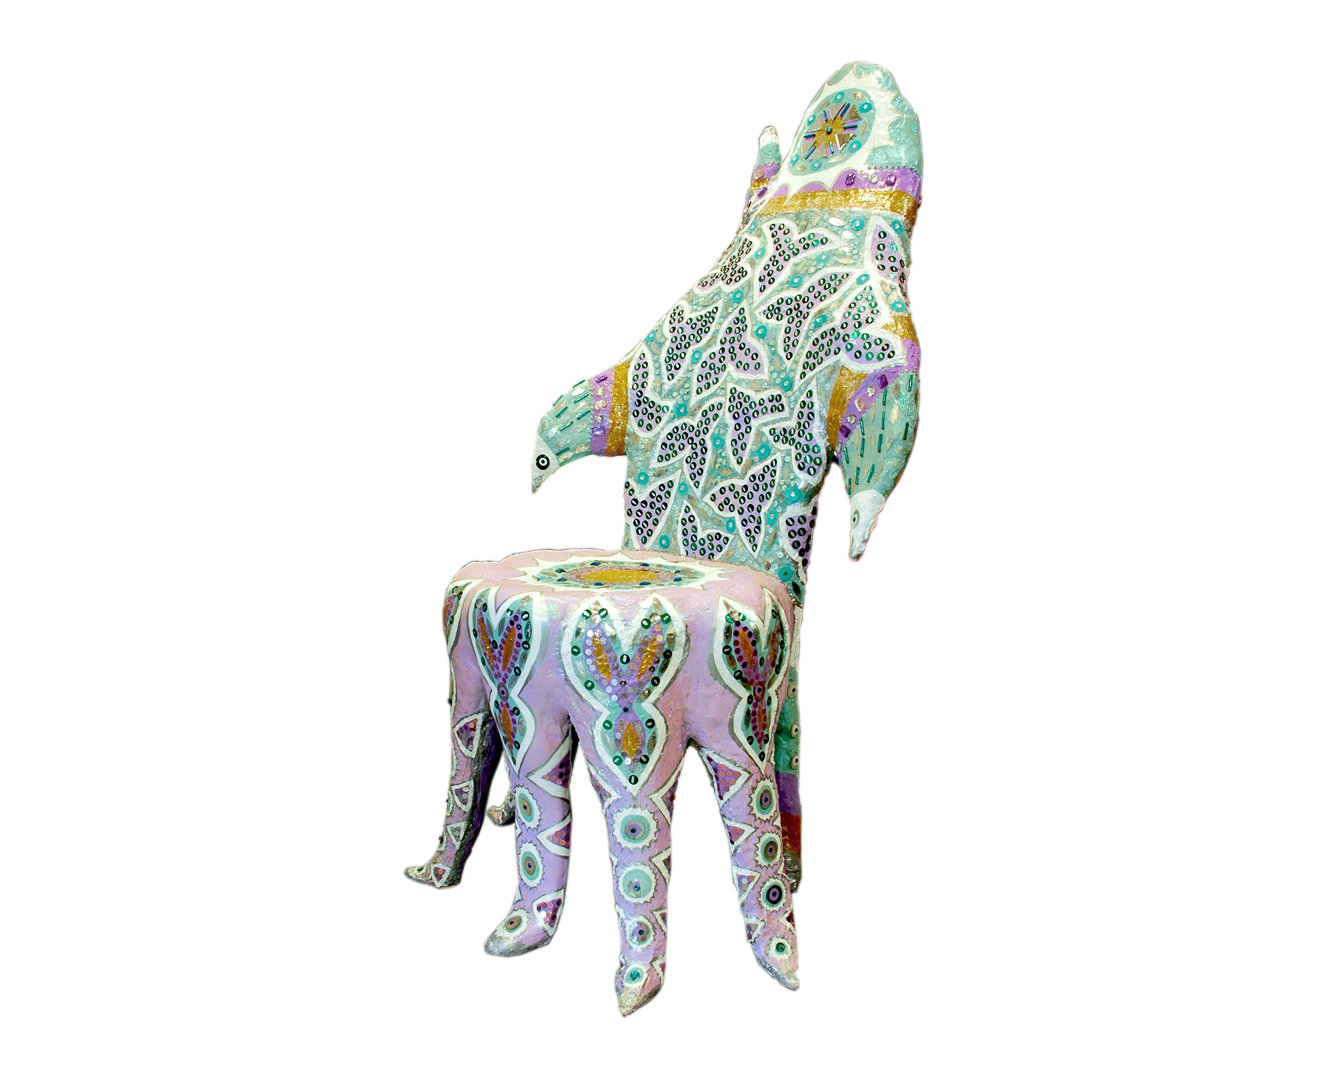 Extravaganter Personality Chair G. Clark OCTOFISH